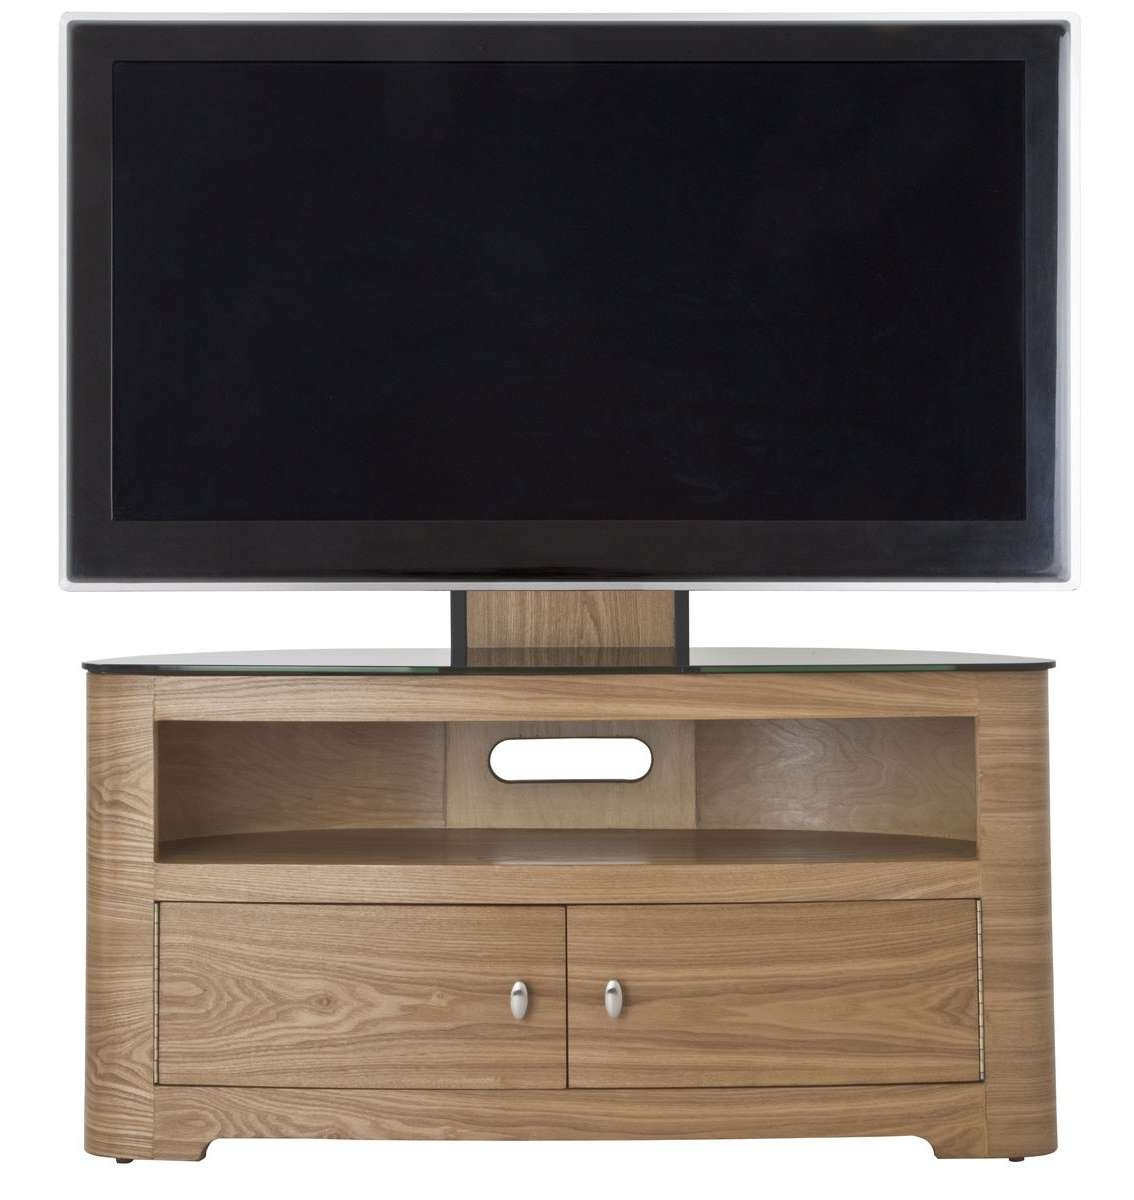 Brown Varnished Maple Wood Tv Stand With Mount Using Double Swing Intended For Maple Wood Tv Stands (View 4 of 15)